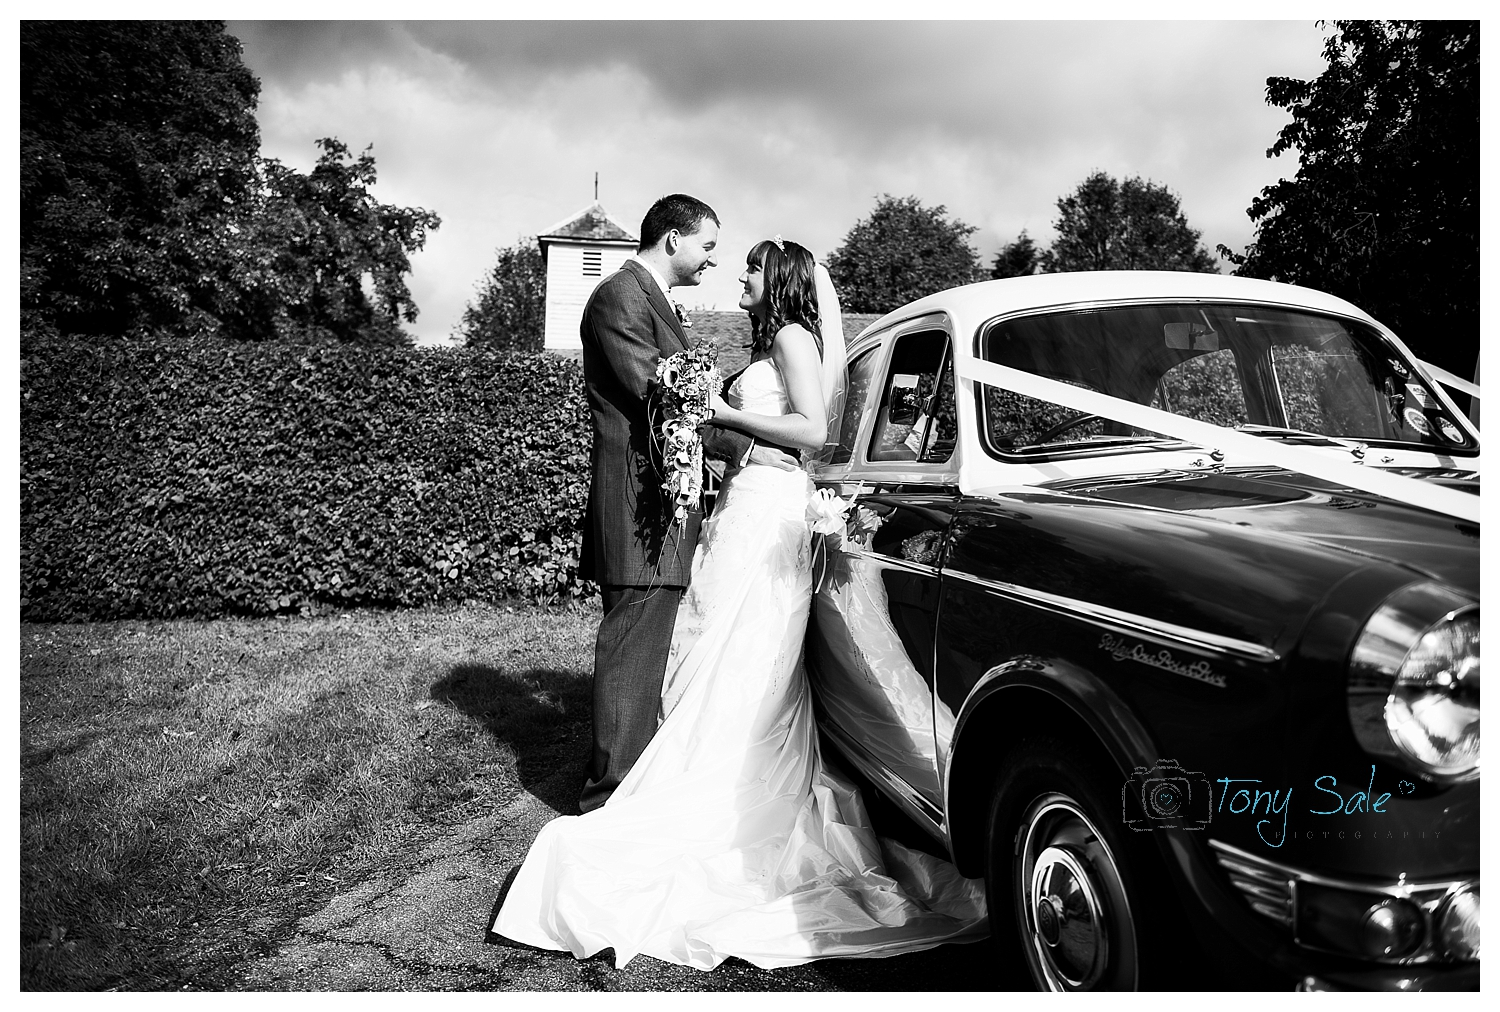 Wedding Photography Colchester_Tony Sale Photography_17